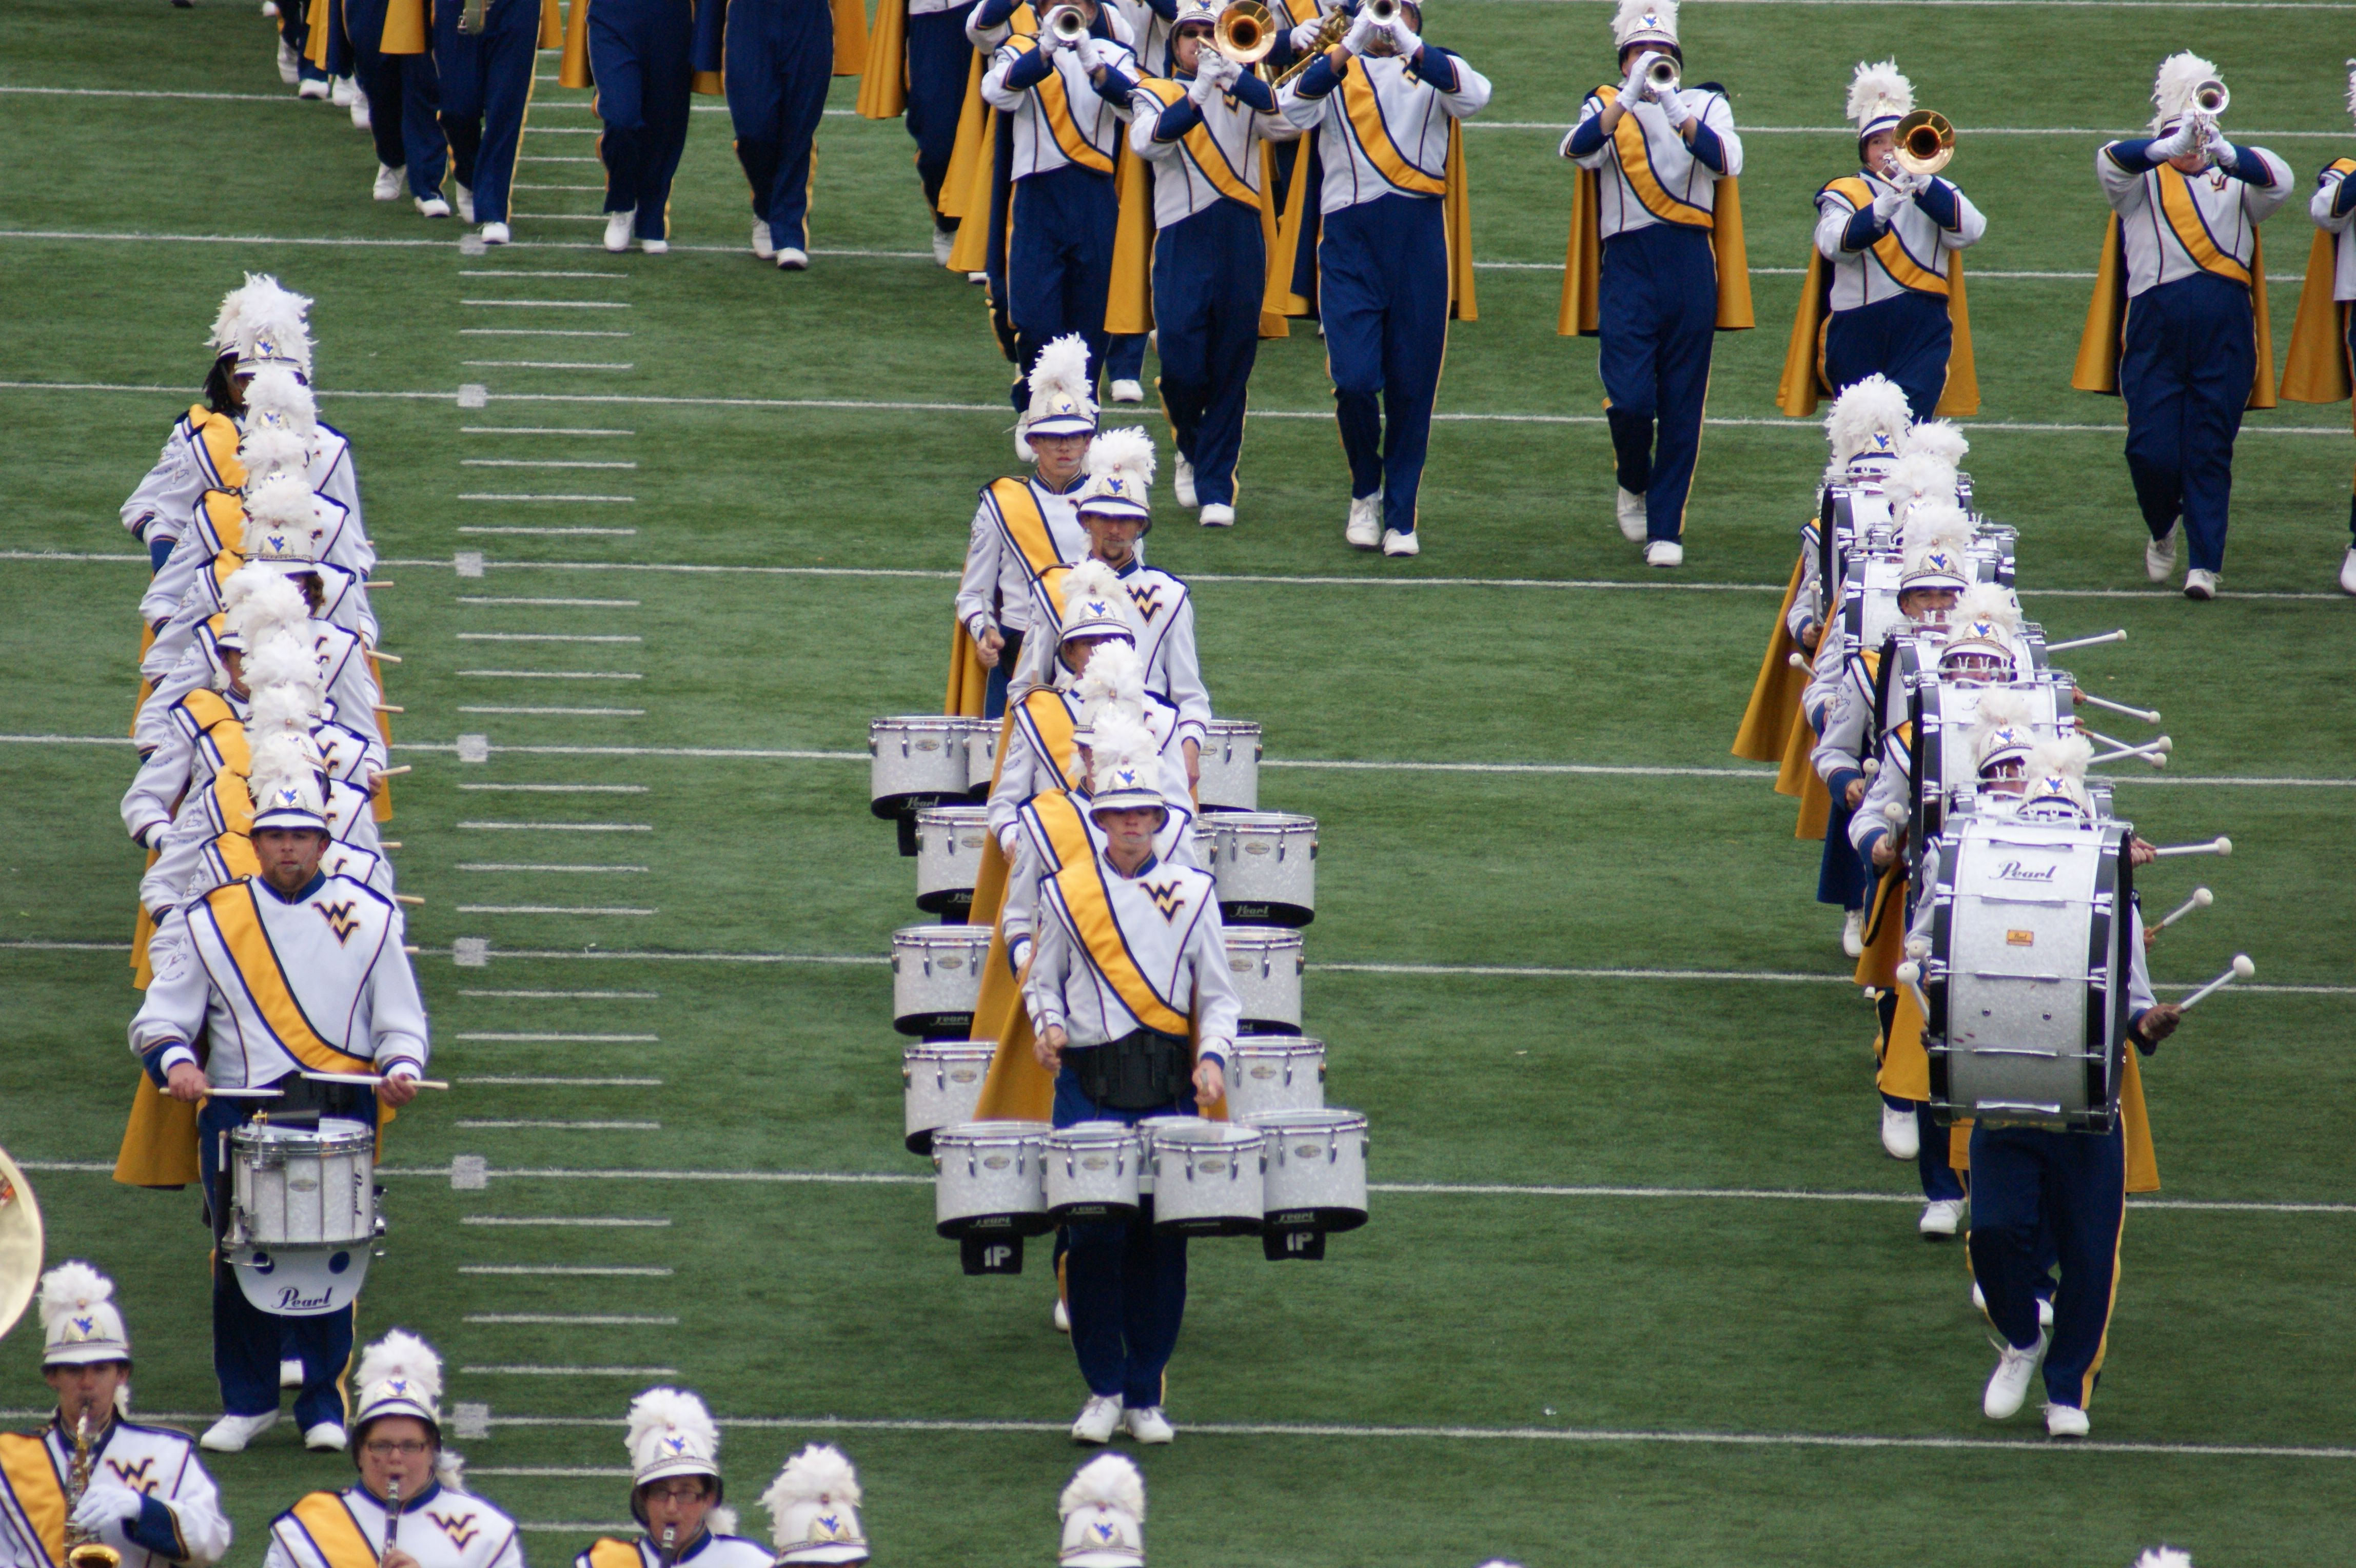 Mountaineer Marching Band 2014 Wvu football